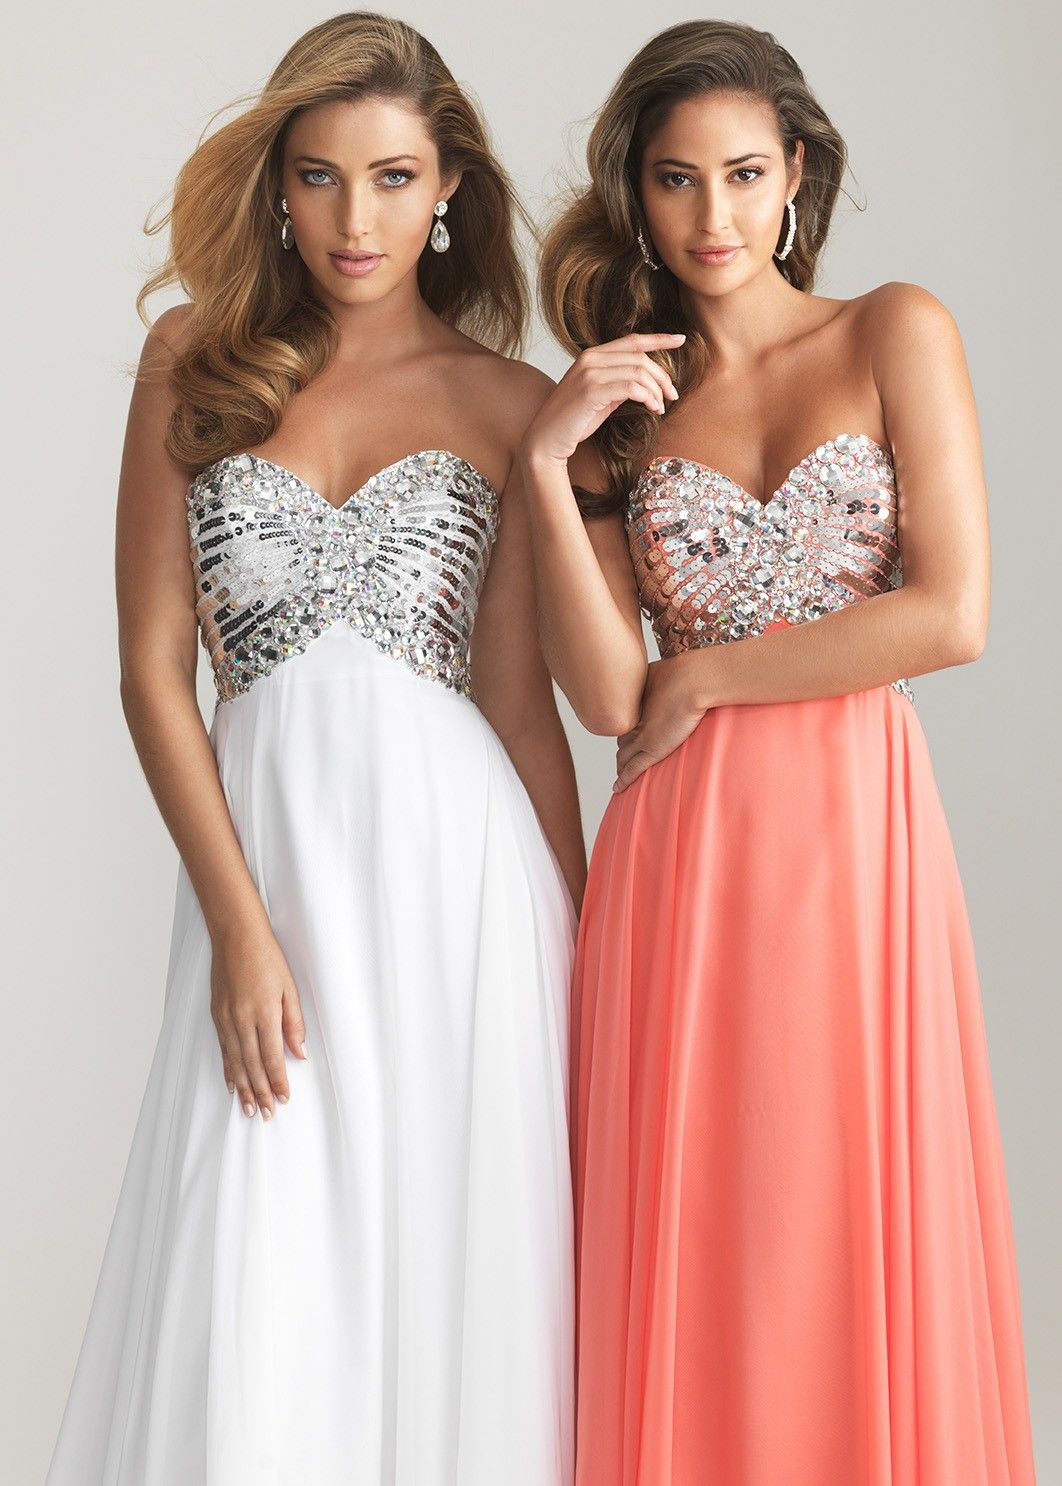 10 Best images about Peach &amp- Coral Wedding Bridal Evening Gowns on ...